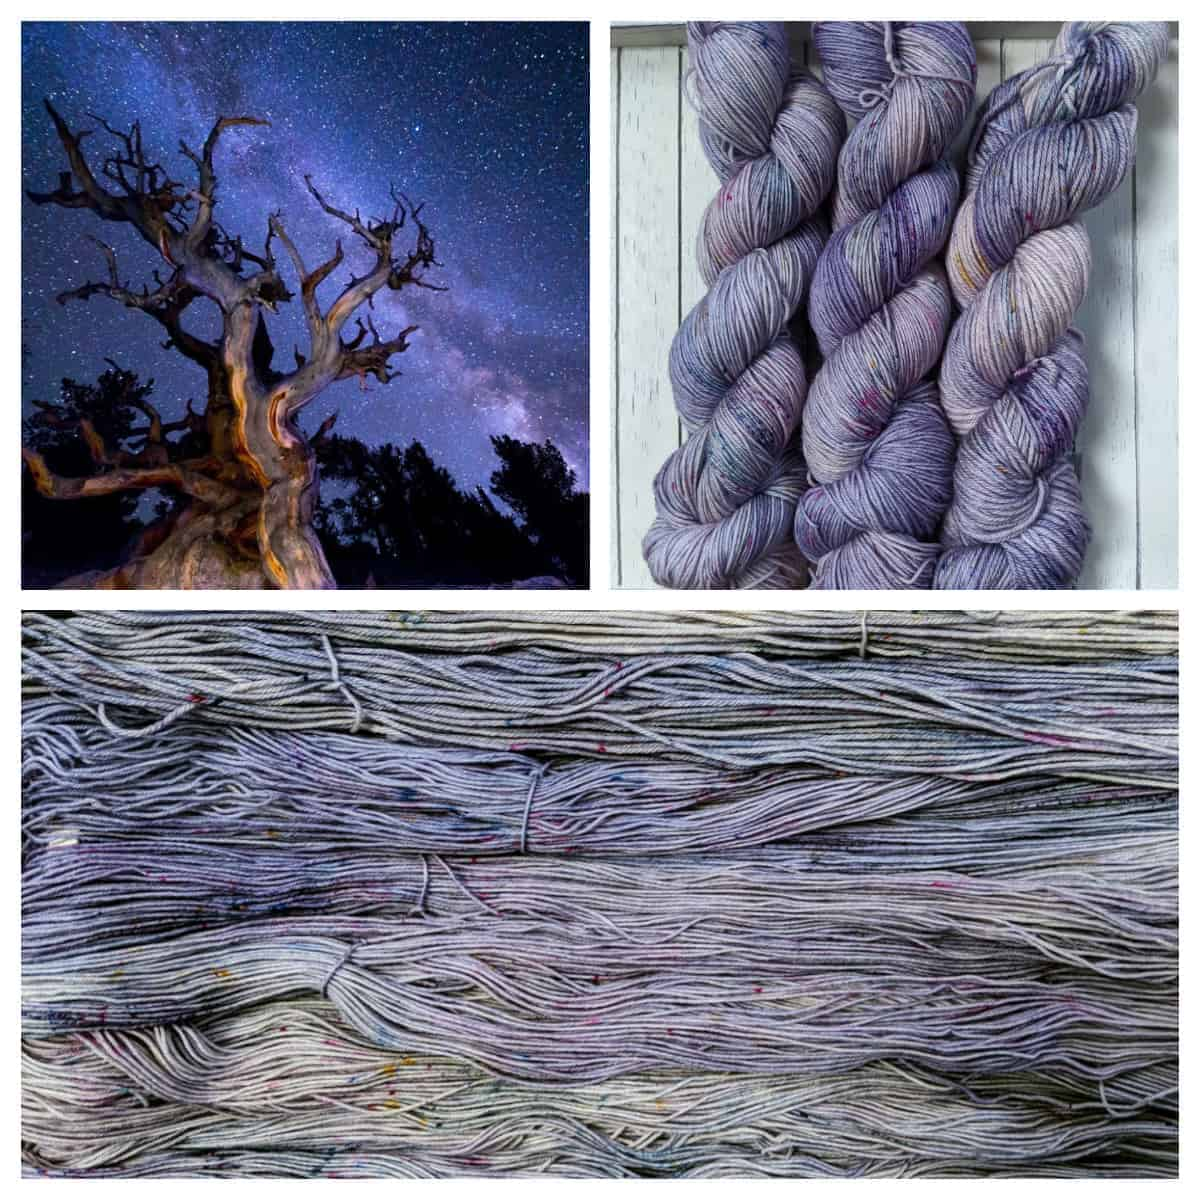 A gnarled tree under stars and purple speckled yarn.